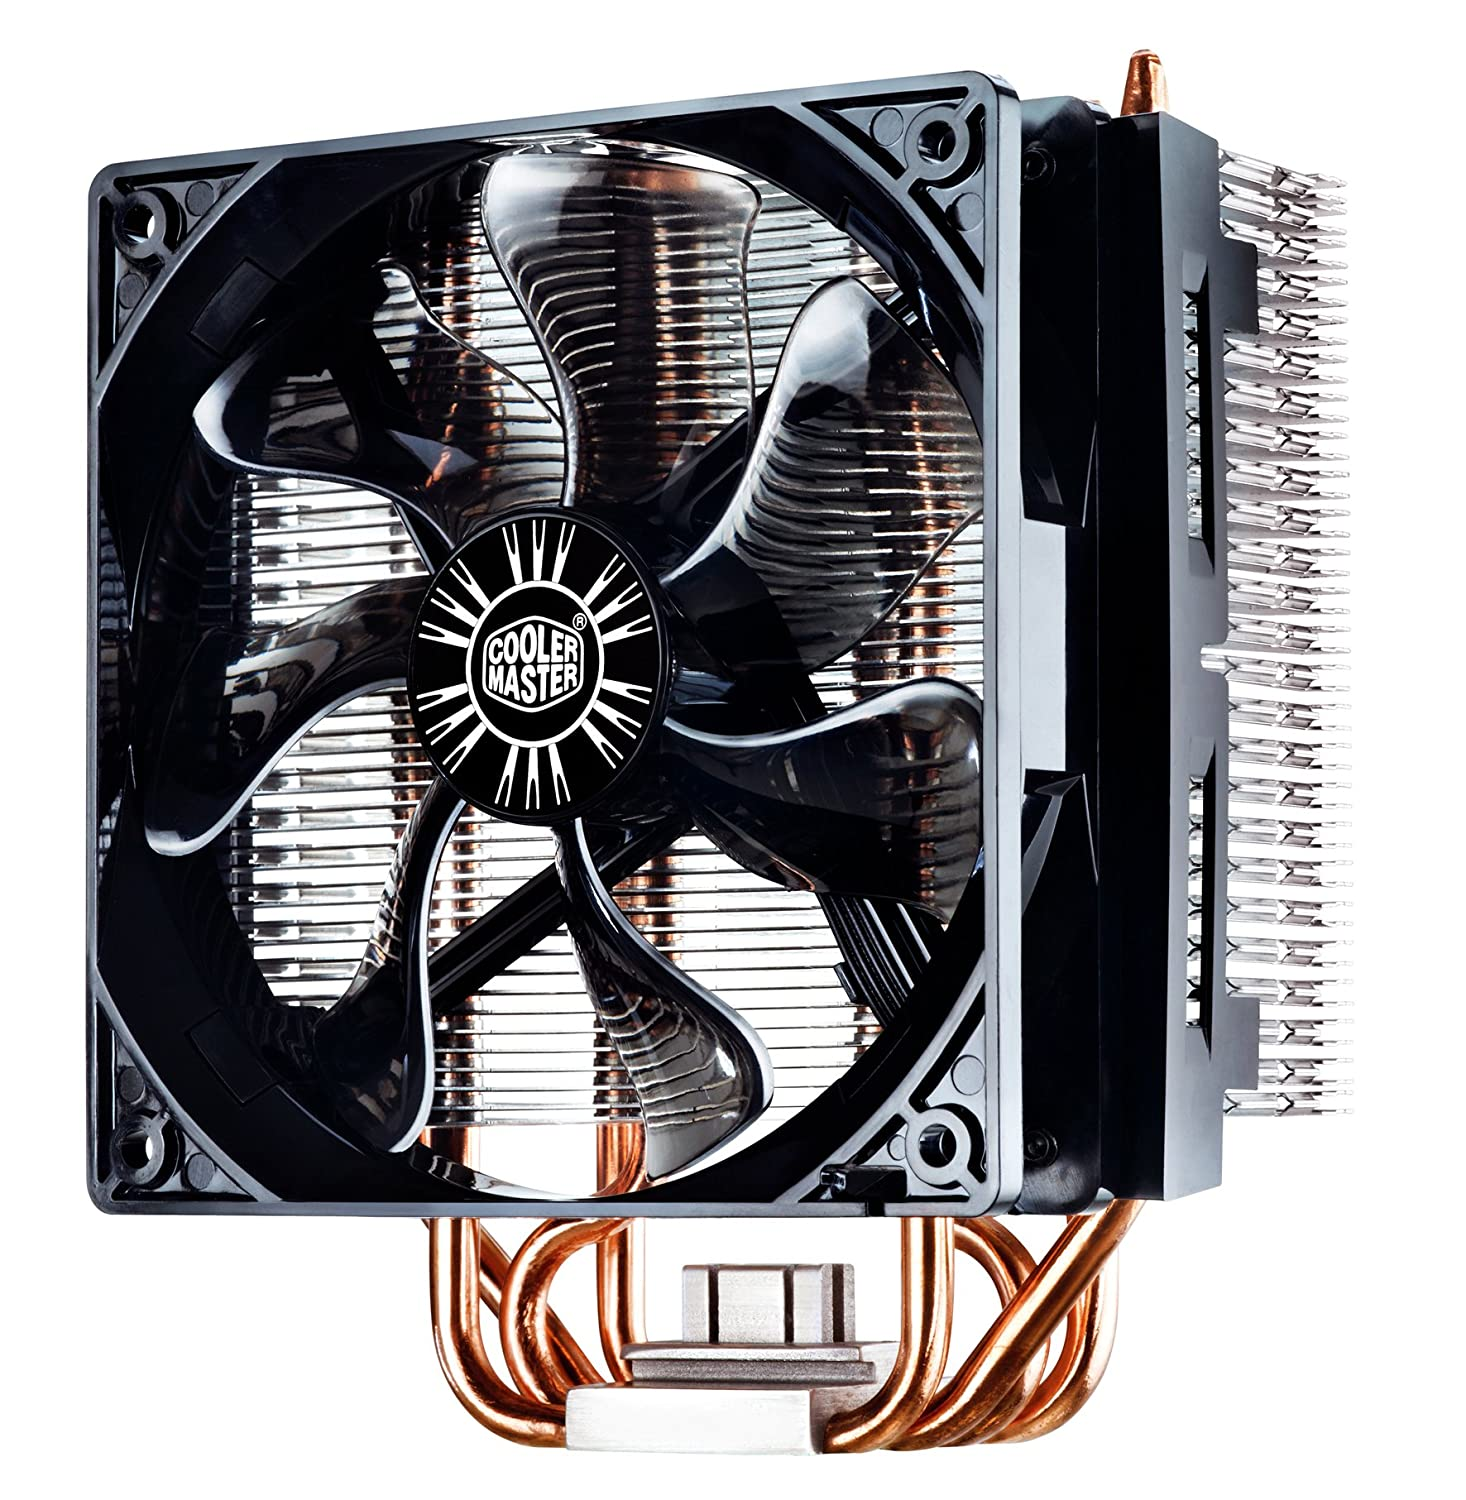 Cooler Master Hyper T4 CPU Cooler with 4 Direct Contact Heatpipes RR-T4-18PK-R1 $4.99 after Rebate